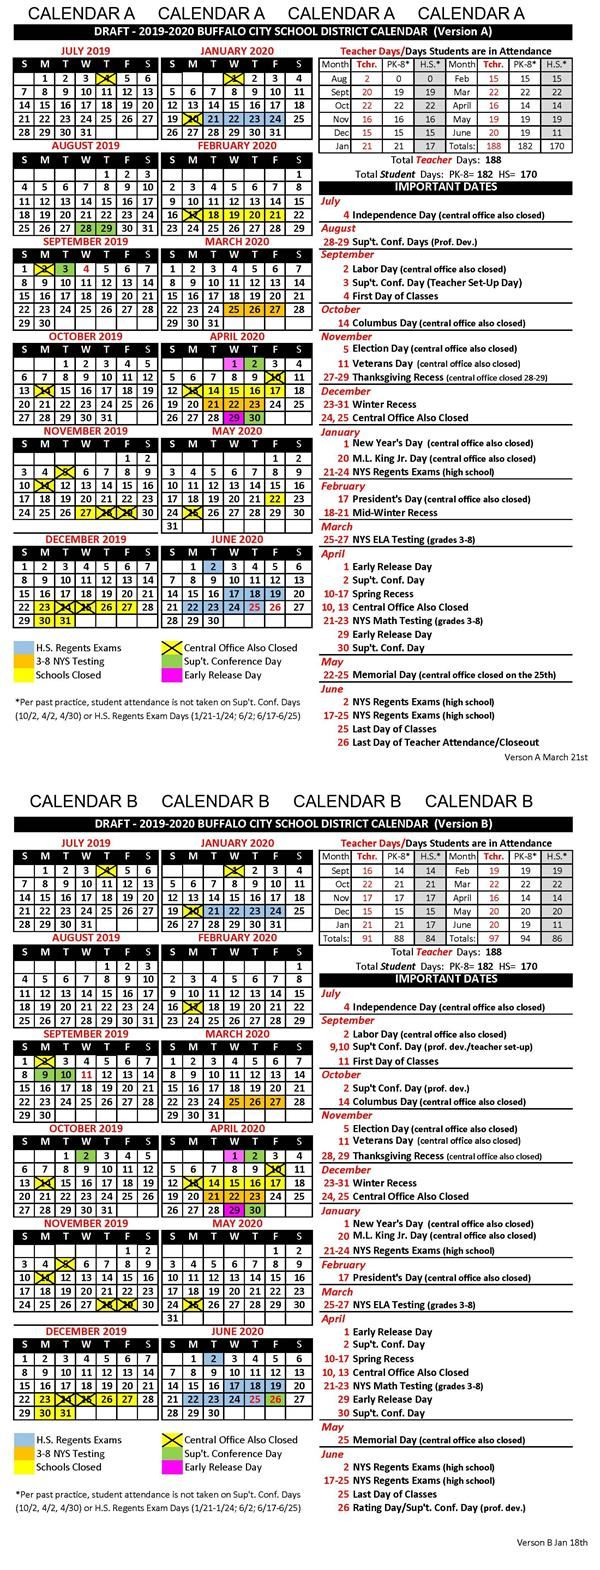 Uiuc Academic Calendar 2020-2021 Top 10 Punto Medio Noticias | Purdue Academic Calendar 2020 21